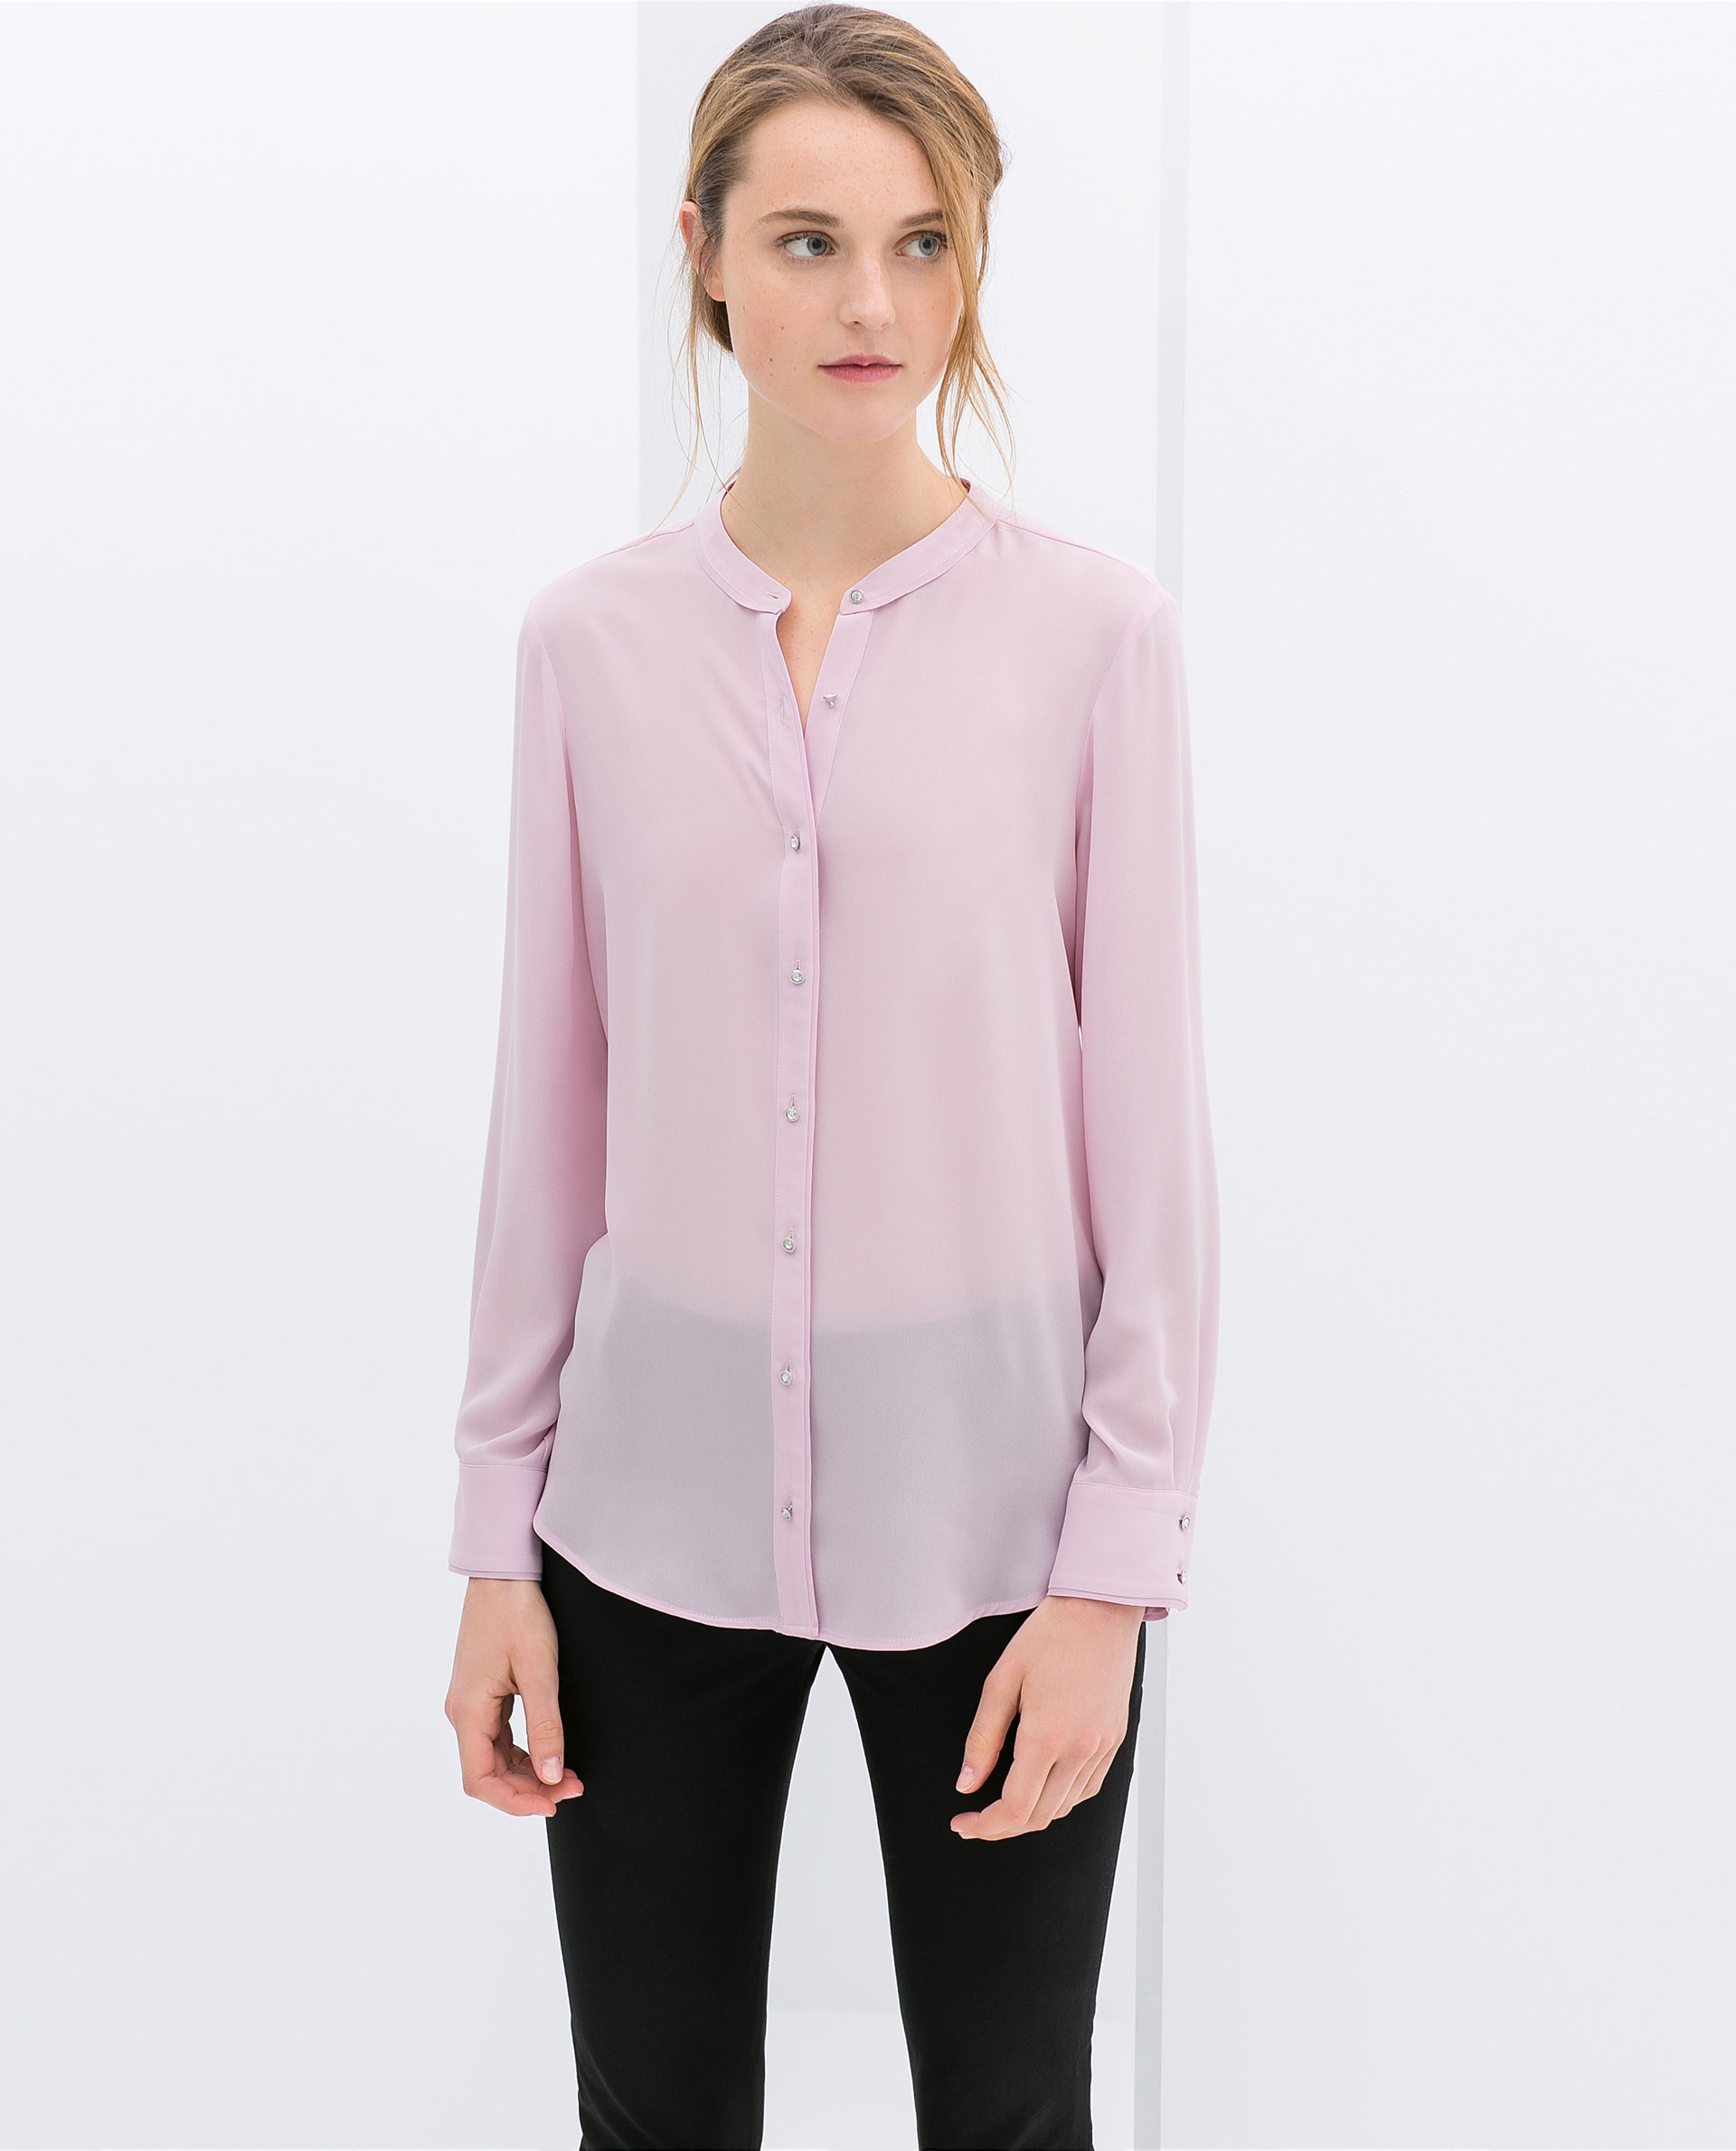 Zara Ladies Blouse 59